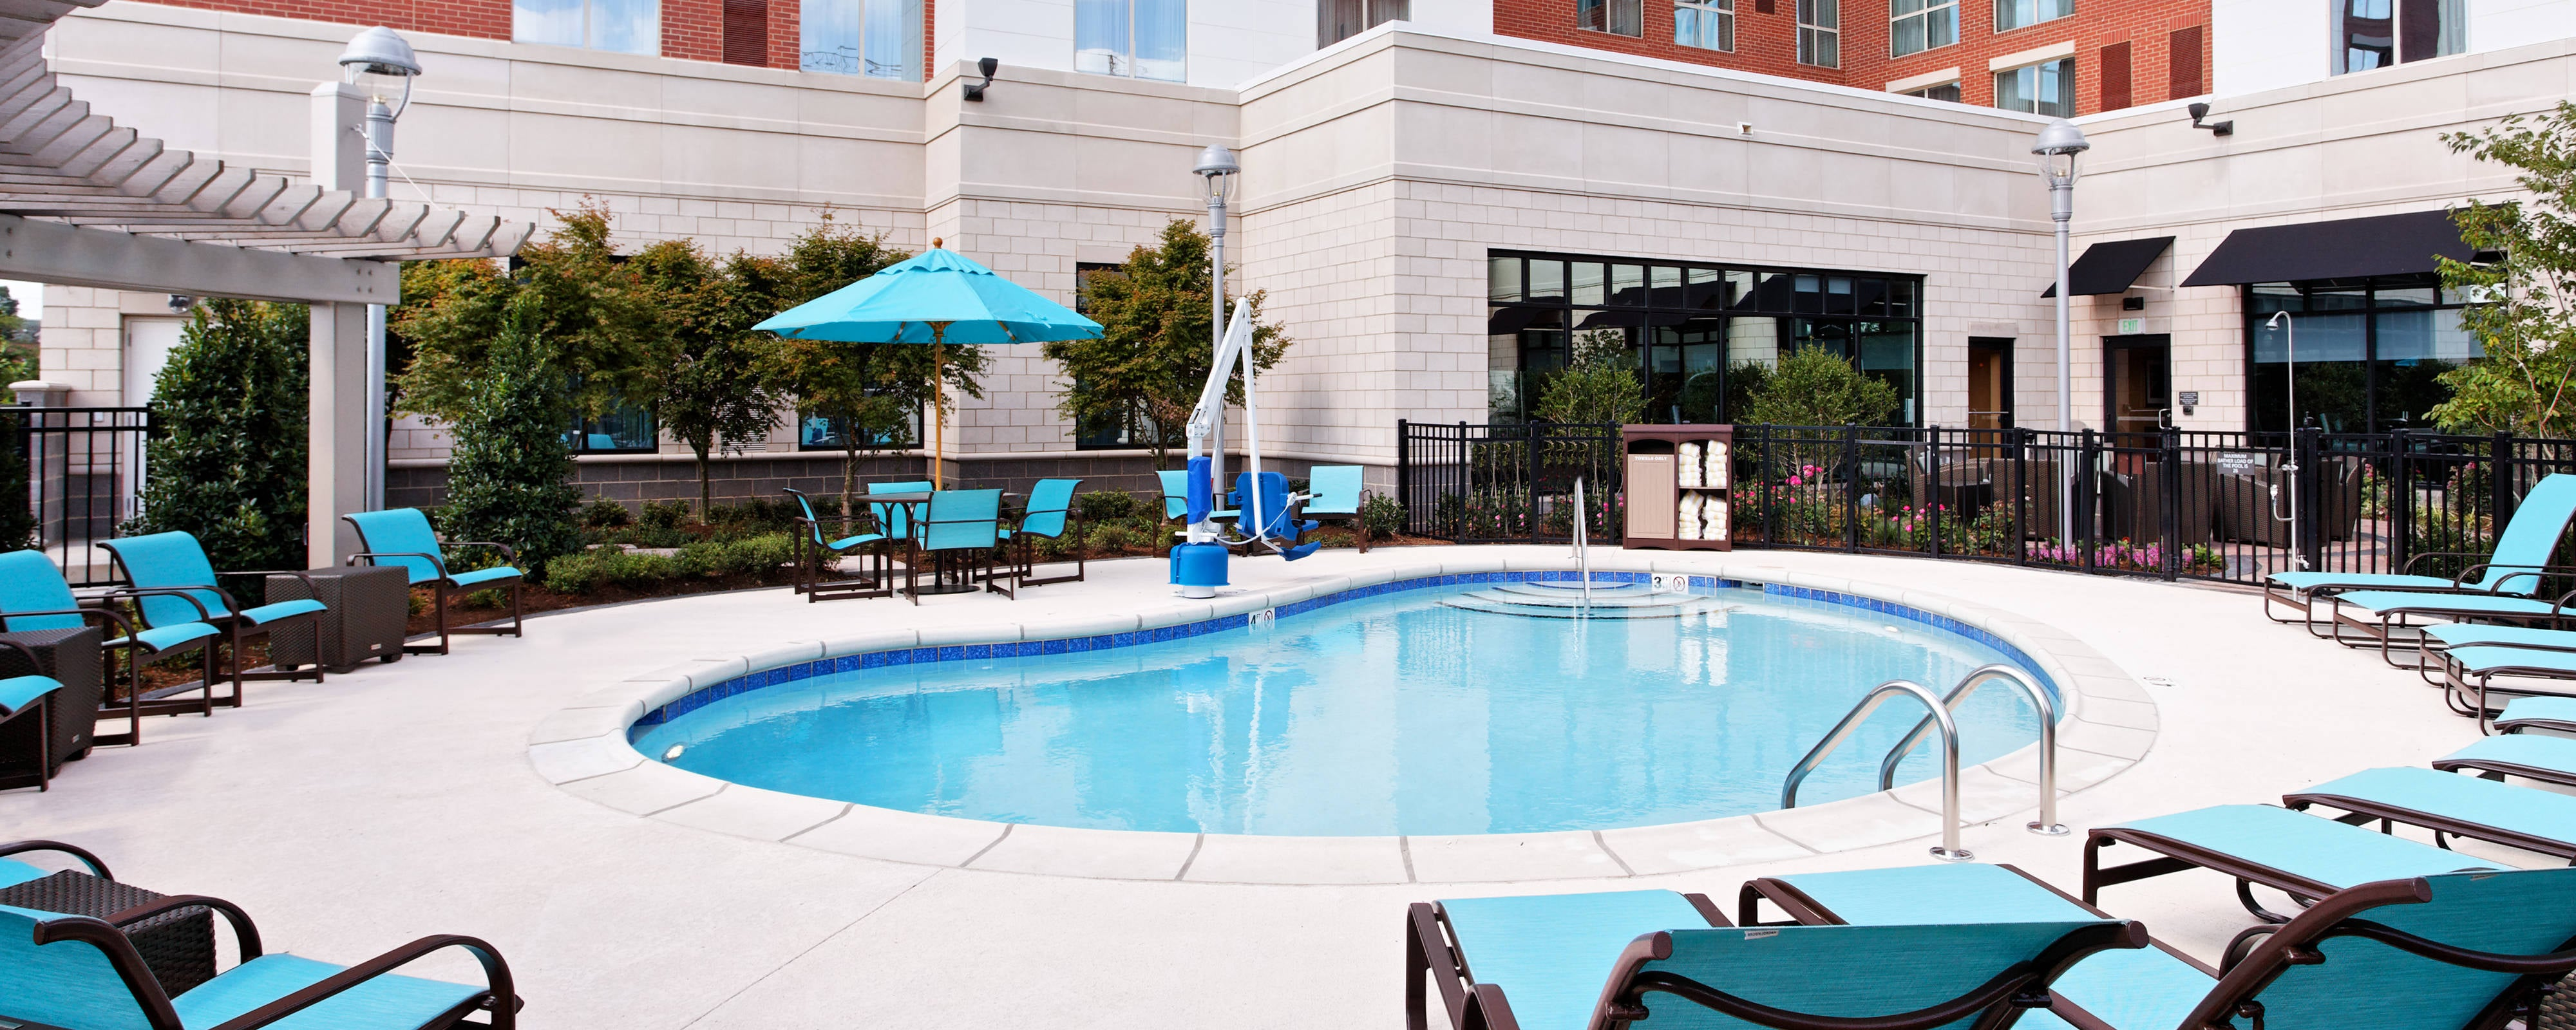 little rock hotel pool